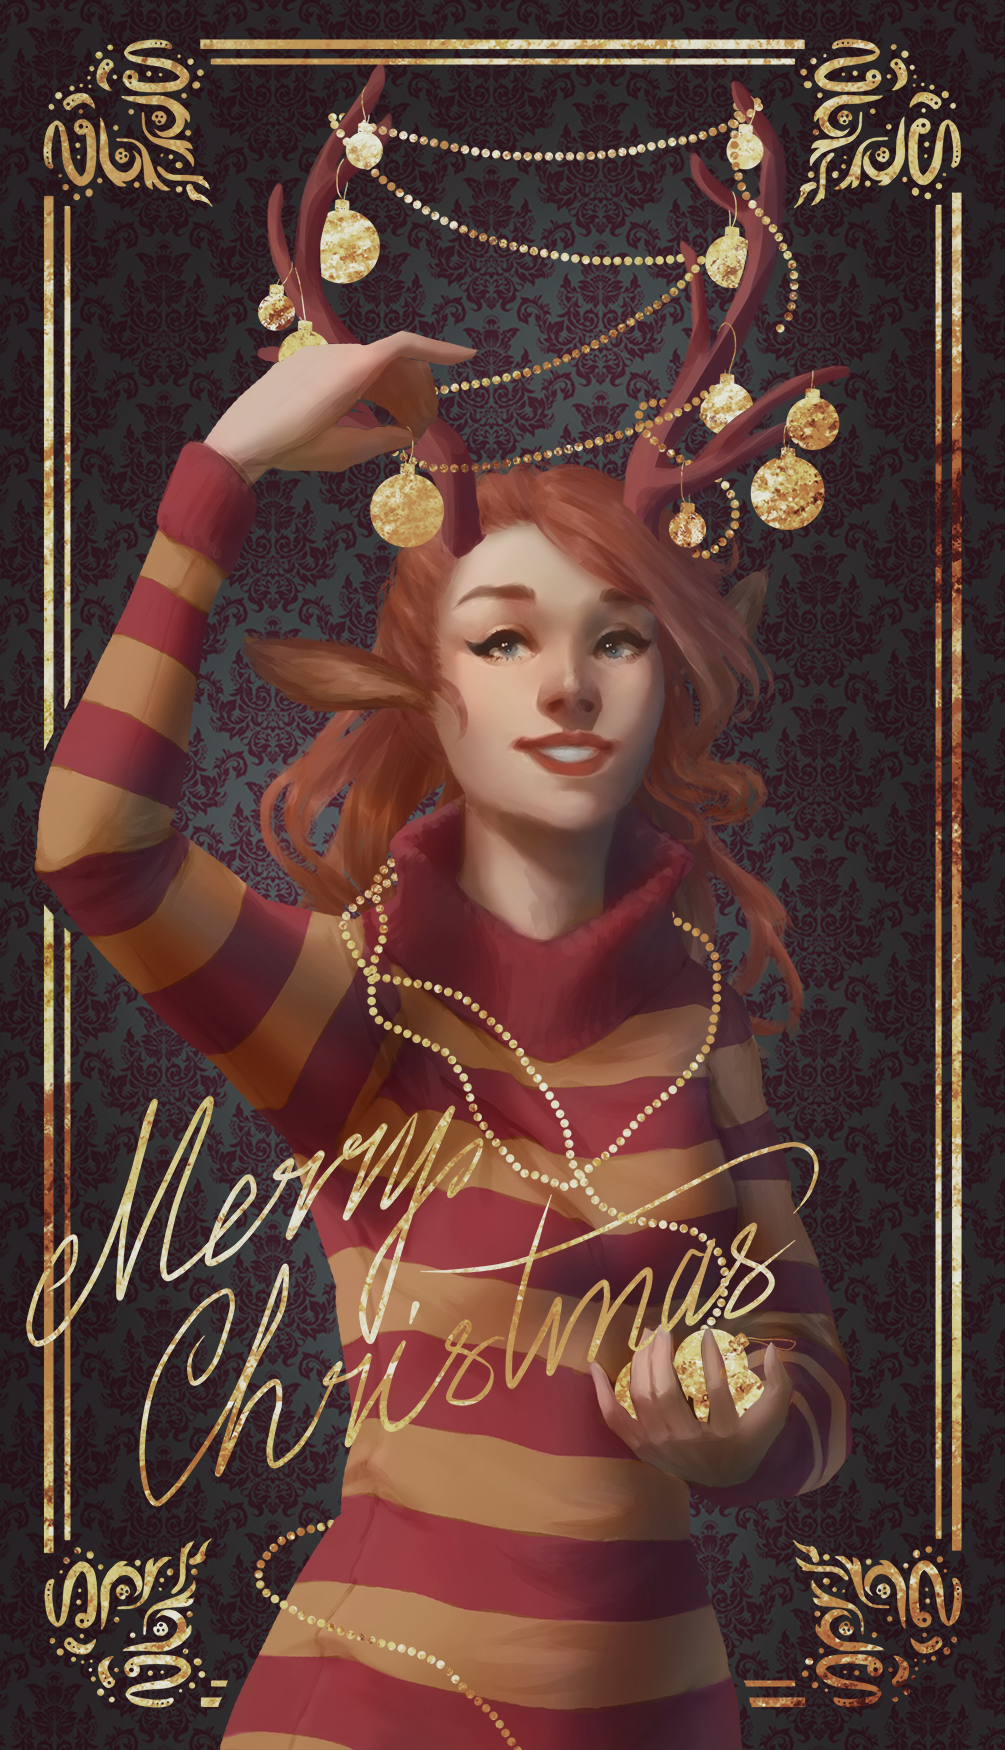 Merry Christmas -contest entry- by Enduine